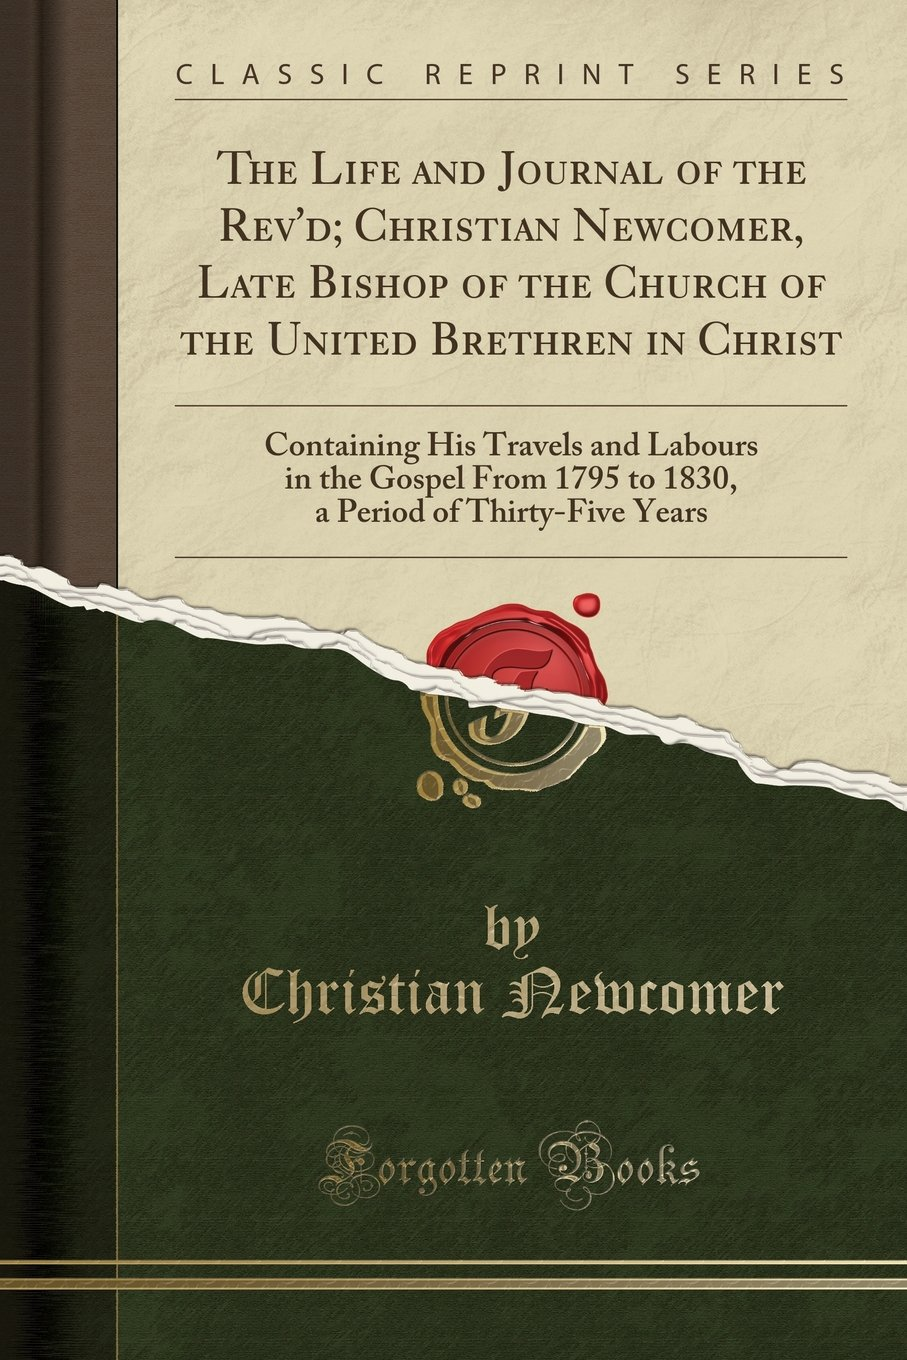 Read Online The Life and Journal of the Rev'd; Christian Newcomer, Late Bishop of the Church of the United Brethren in Christ: Containing His Travels and Labours ... Period of Thirty-Five Years (Classic Reprint) PDF